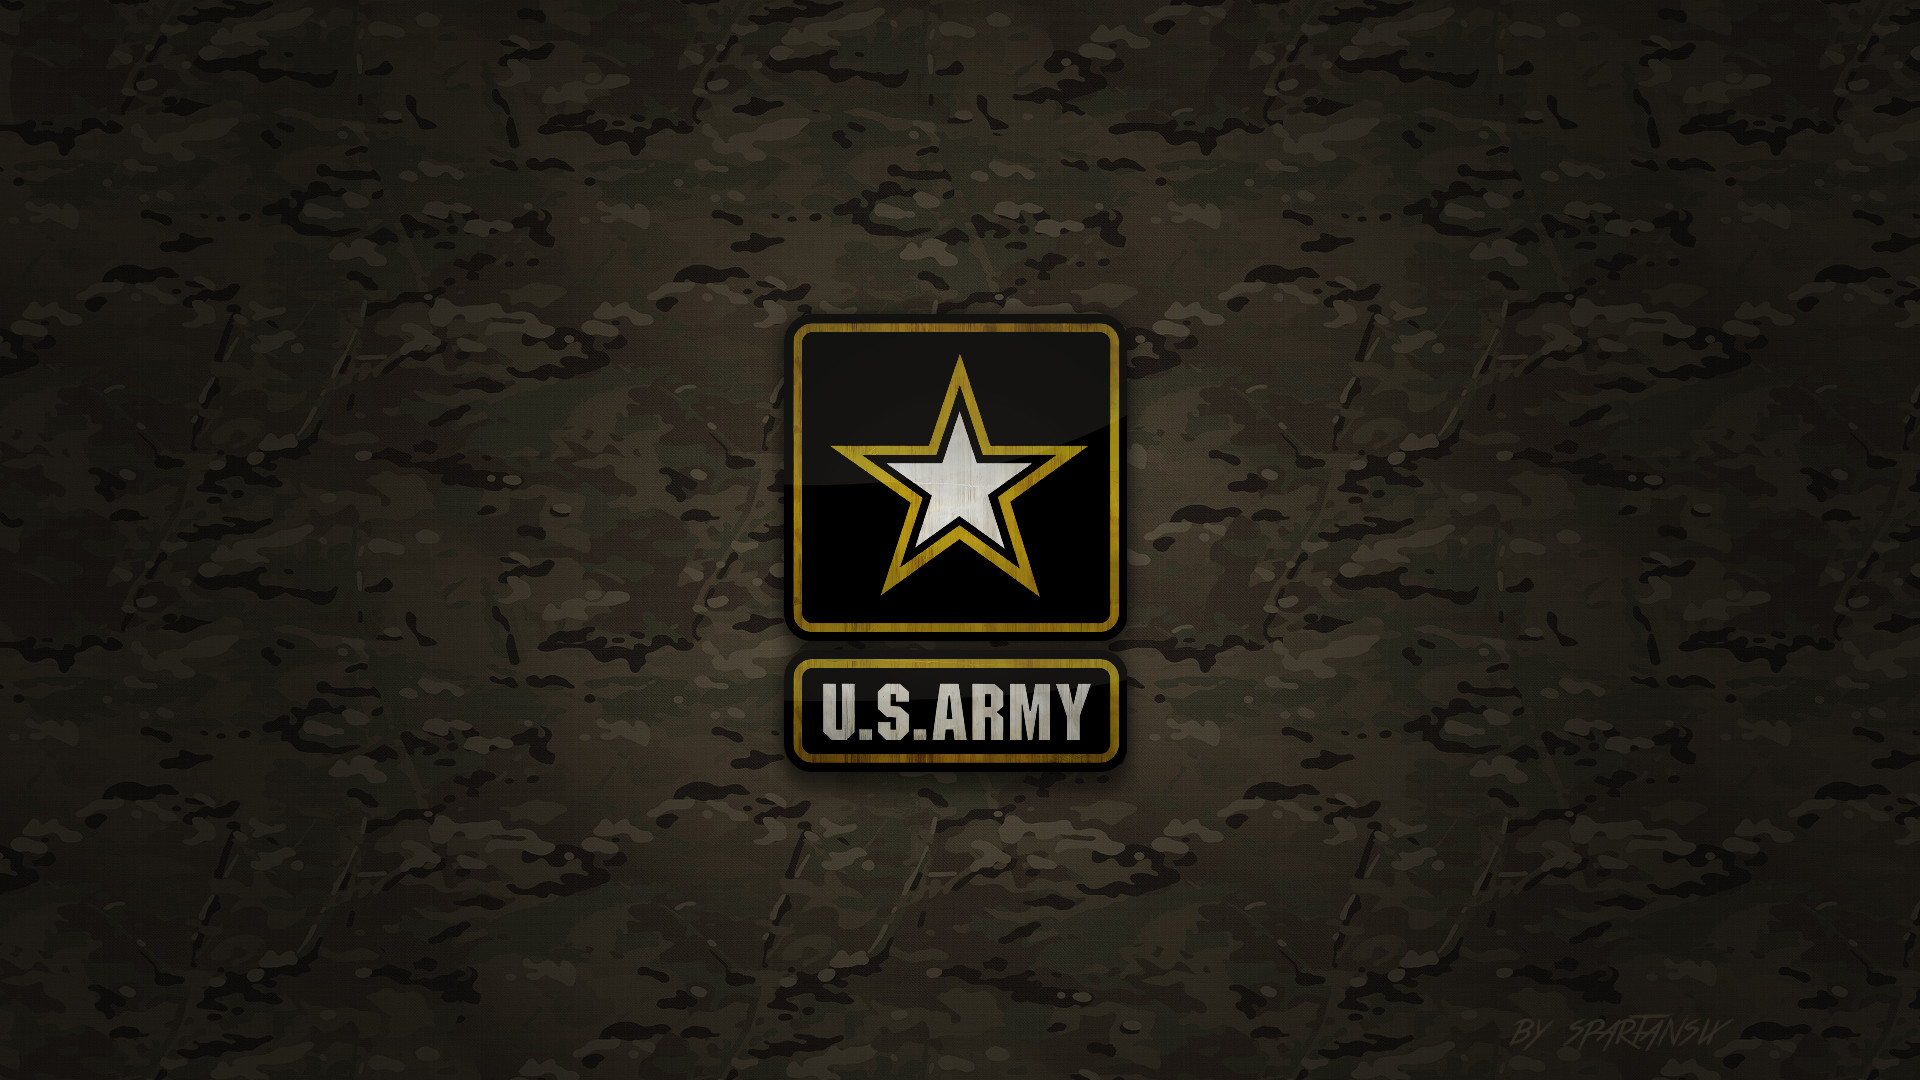 awesome army full screen | HDwallpaper | Pinterest | Army and Hd desktop